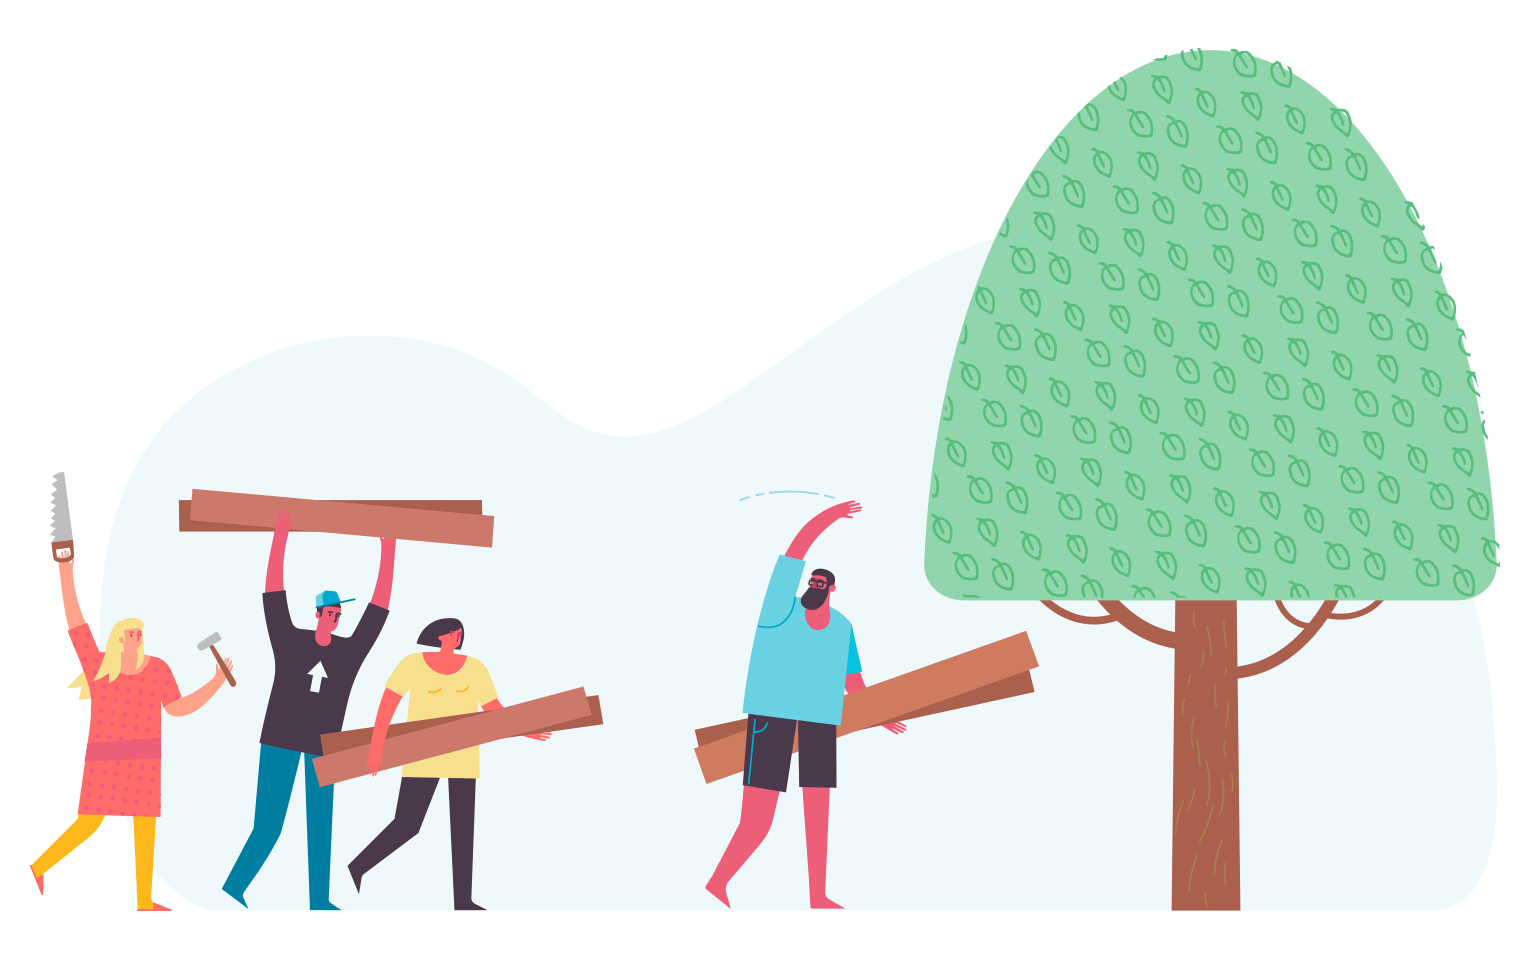 Illustration of a person beckoning to another group of people to help build a tree-house